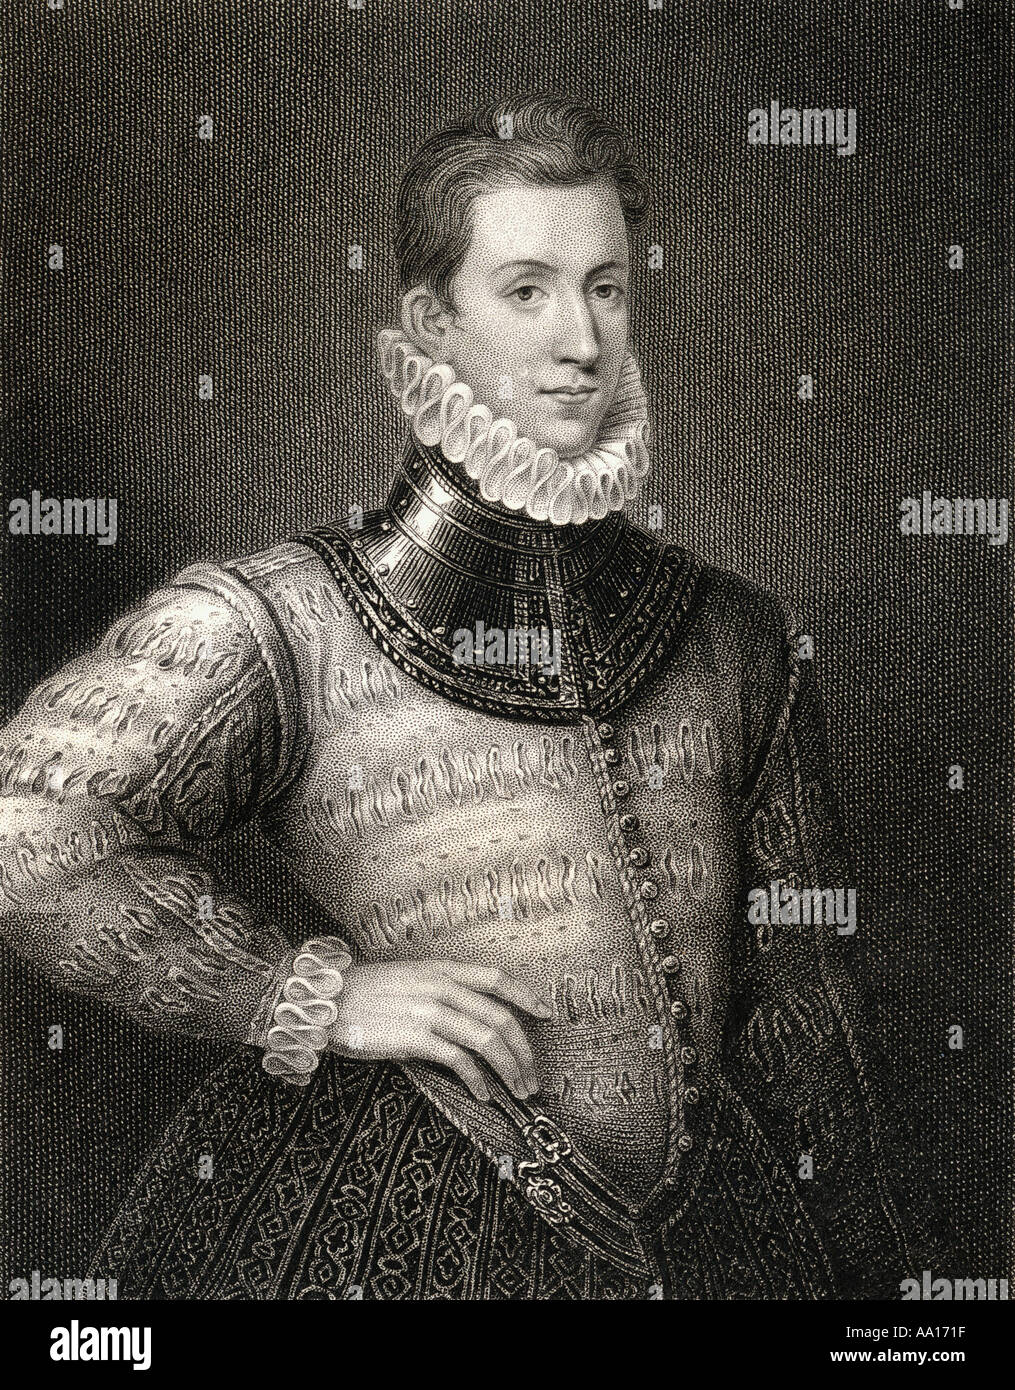 Sir Philip Sidney, 1554 - 1586. English poet, courtier, scholar and soldier - Stock Image